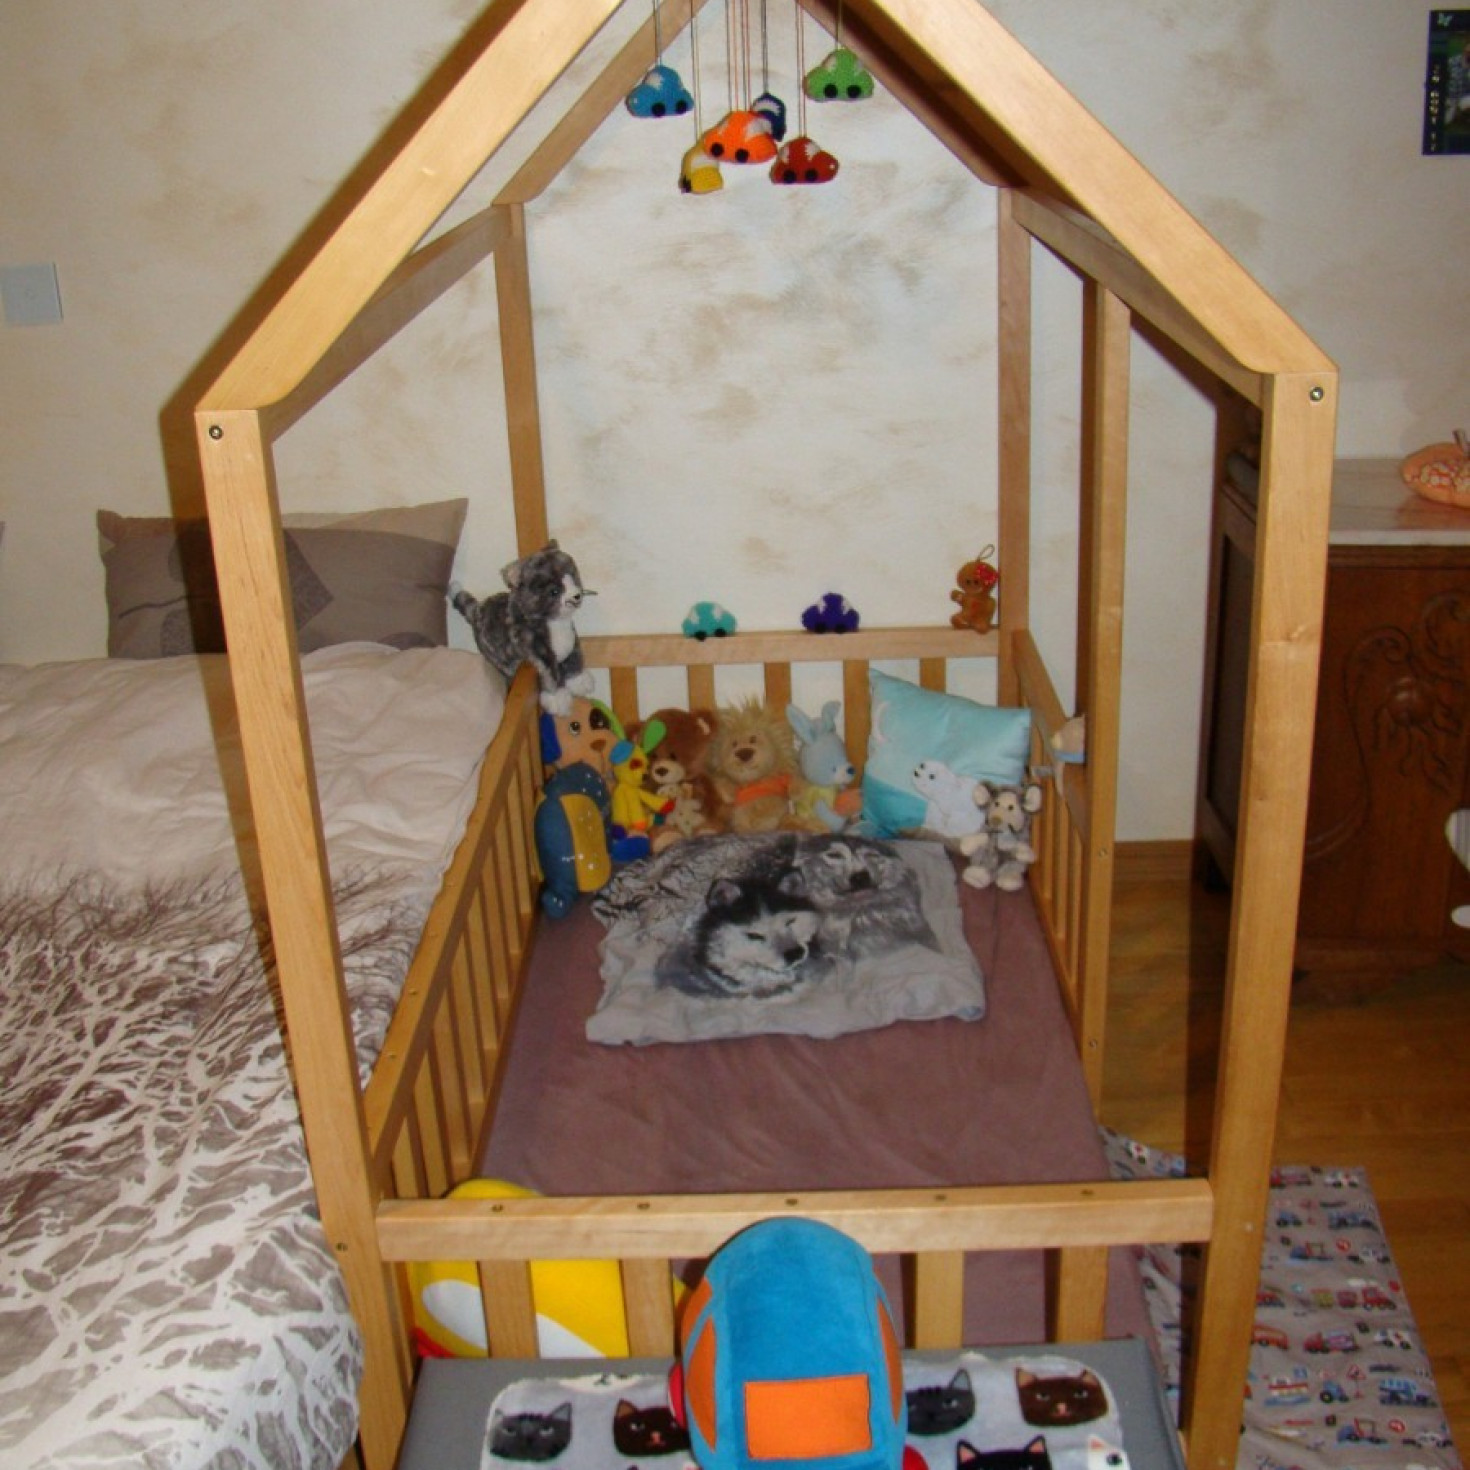 A crib-sized floor bed for babies